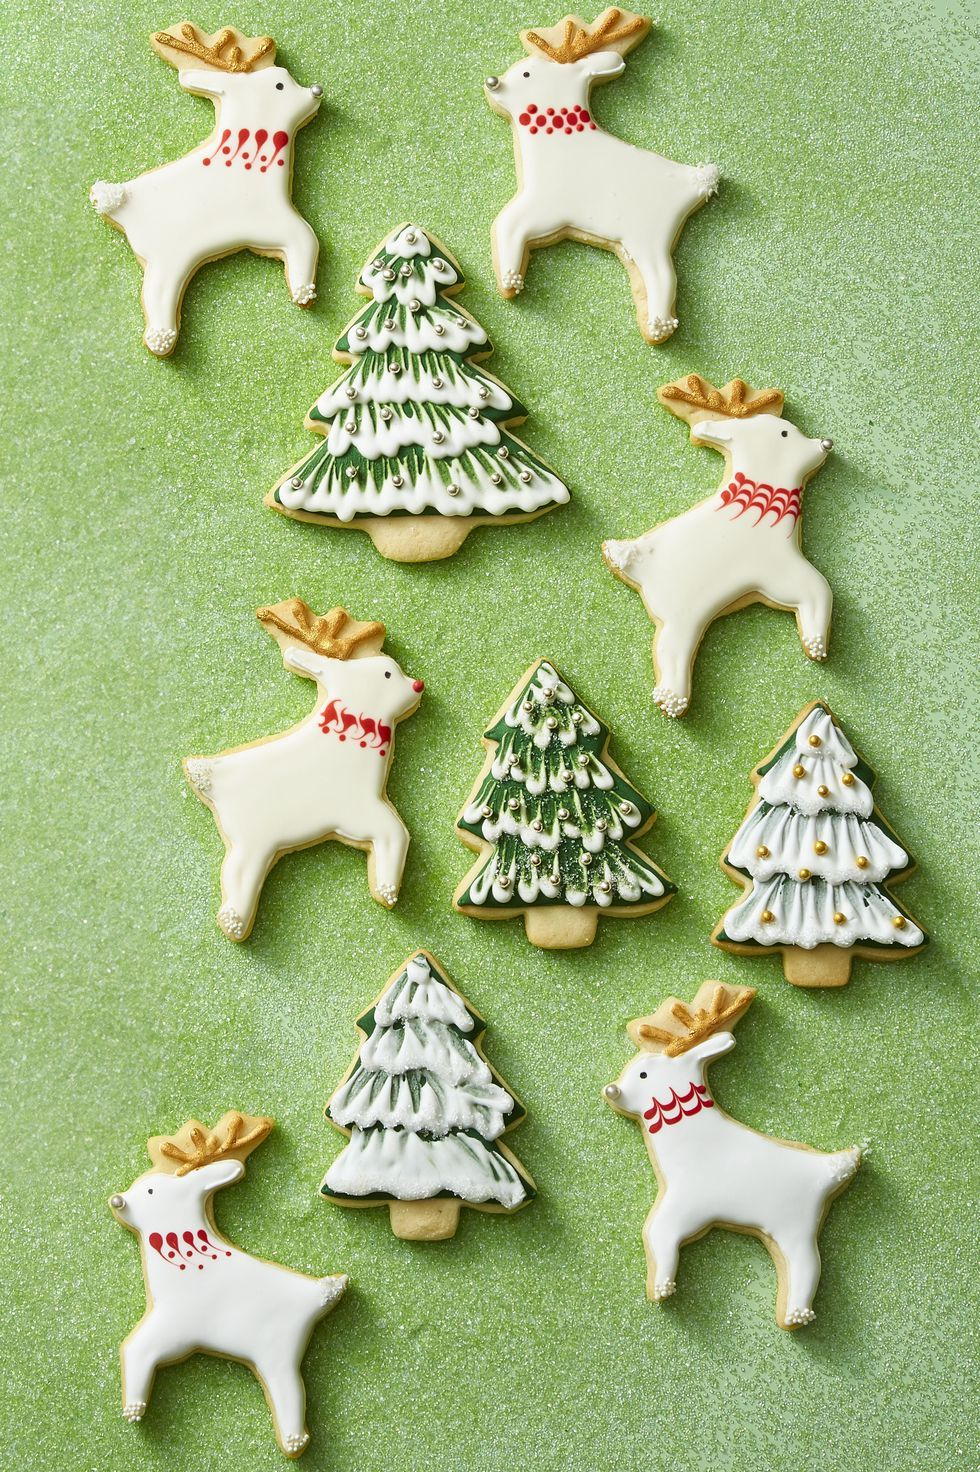 c3409098290dd 75 Easy Christmas Cookies - Best Recipes for Holiday Cookie Ideas